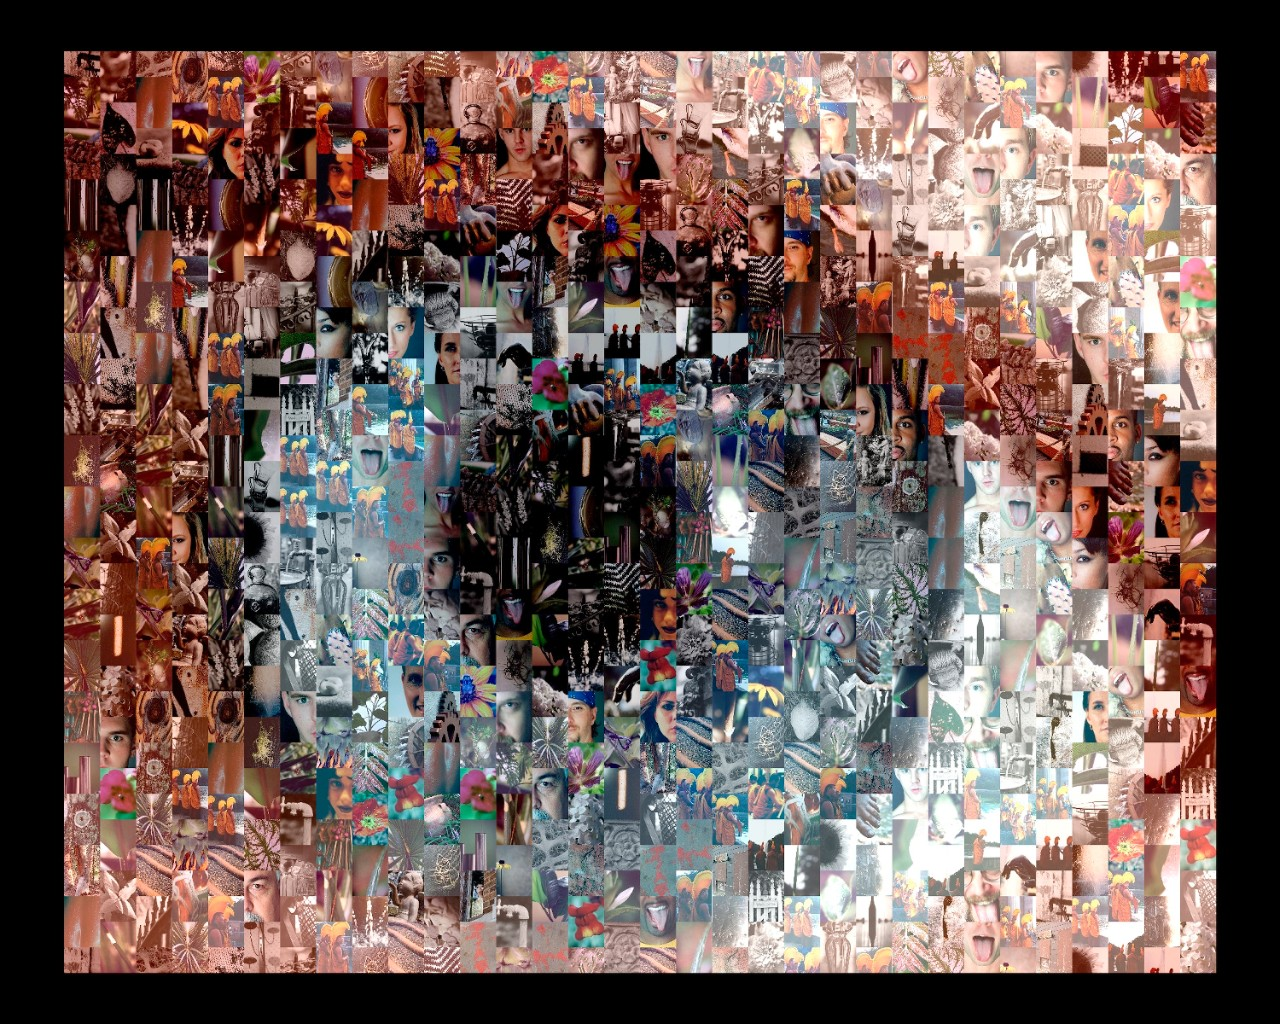 Photographic Art, The Eye of the Beholder (2002)